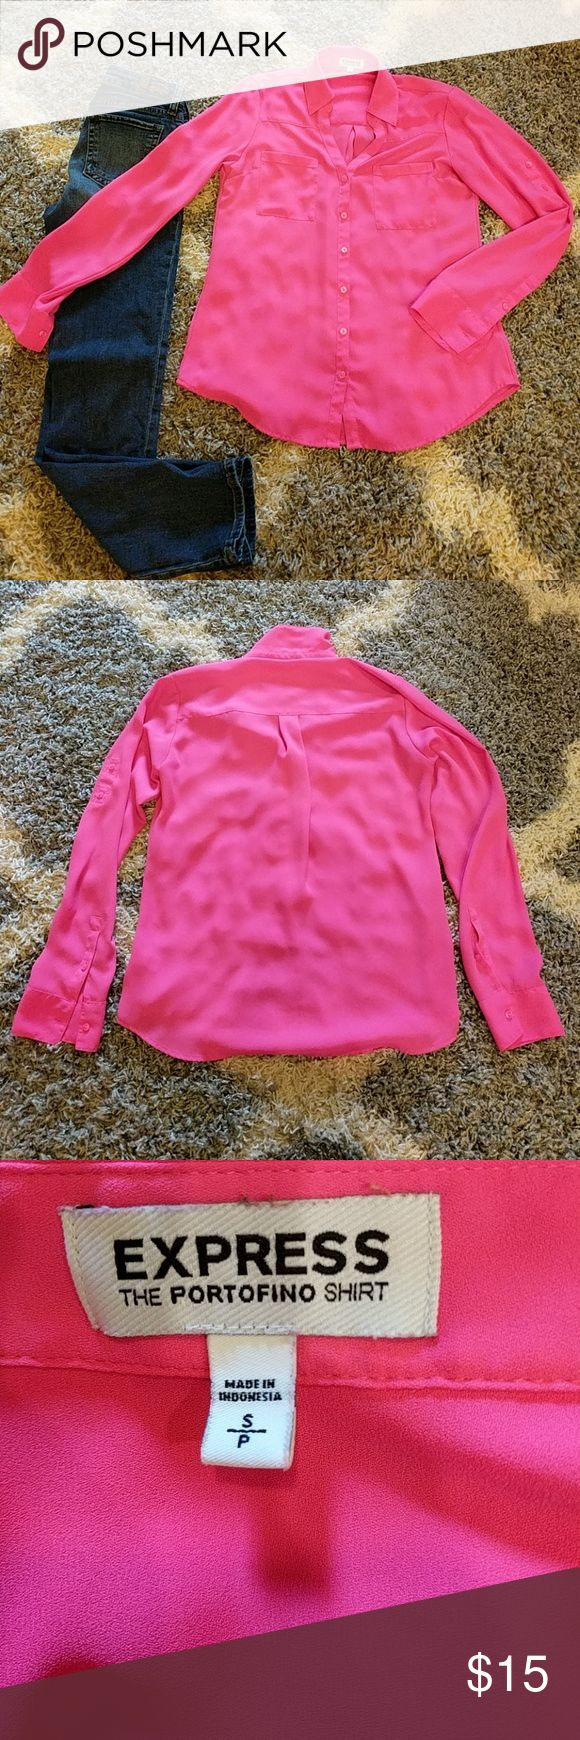 ??Hot Pink Express Portofino shirt Hot pink button down Portofino shirt from Express.  Has two front pockets and buttons on sleeves to cuff up the sleeves.  Great for the office.  100% polyester and machine washable.  Has a few stray strings around the button holes. Express Tops Button Down Shirts